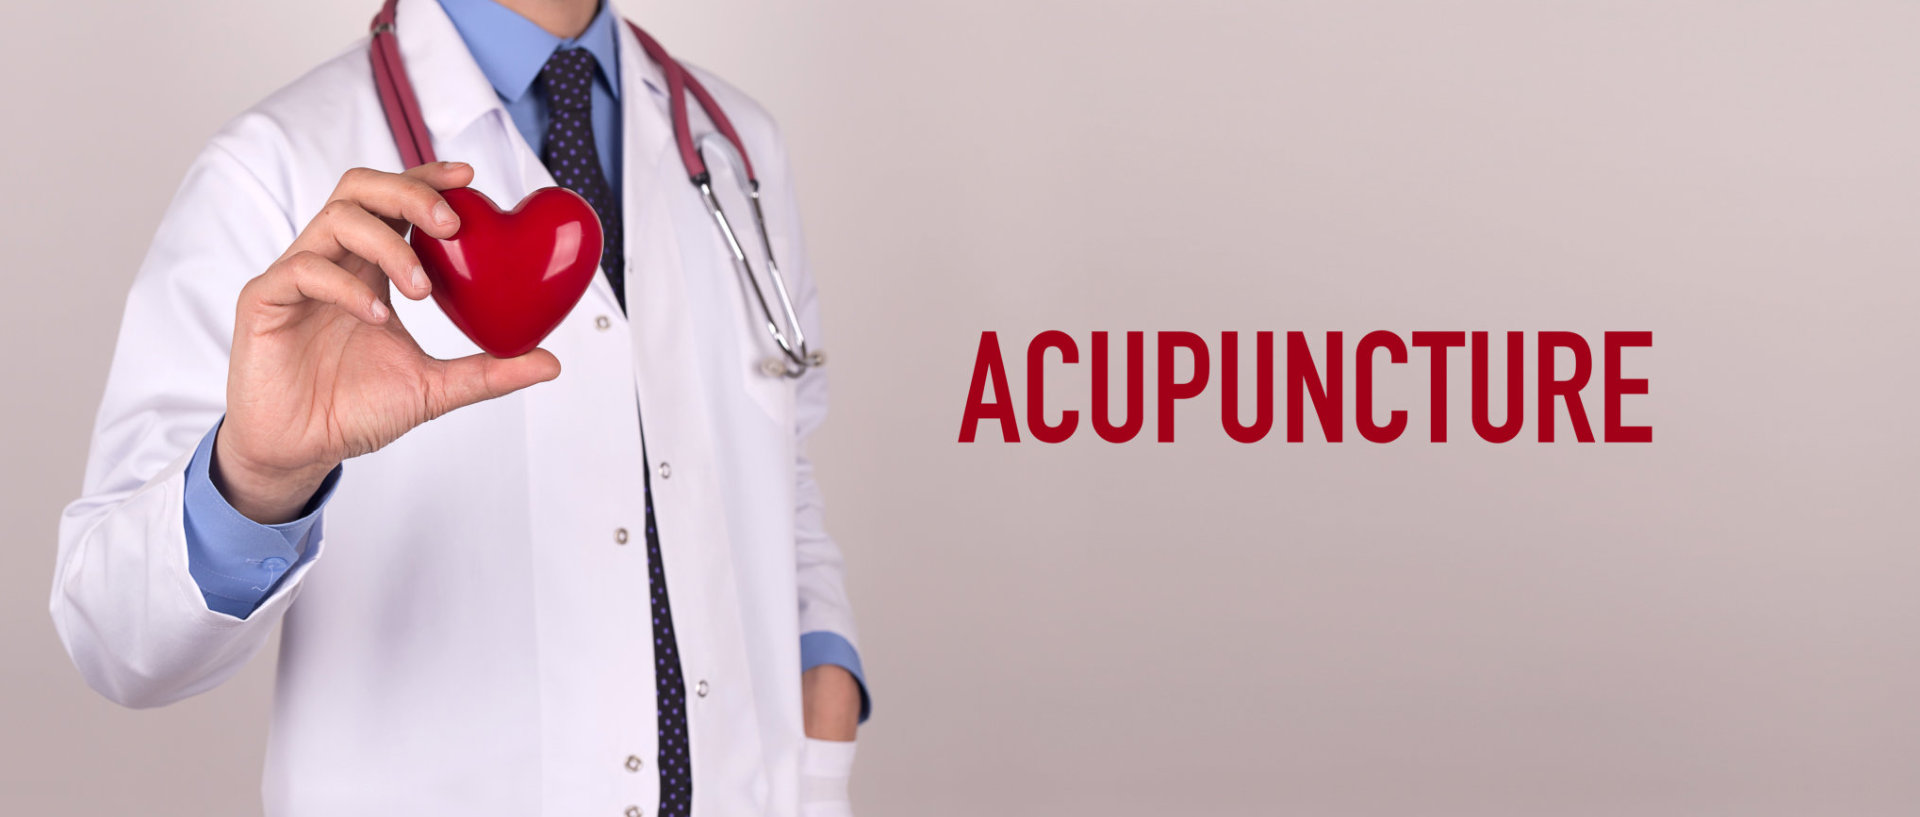 acupunture concept doctor holding a stuffed heart